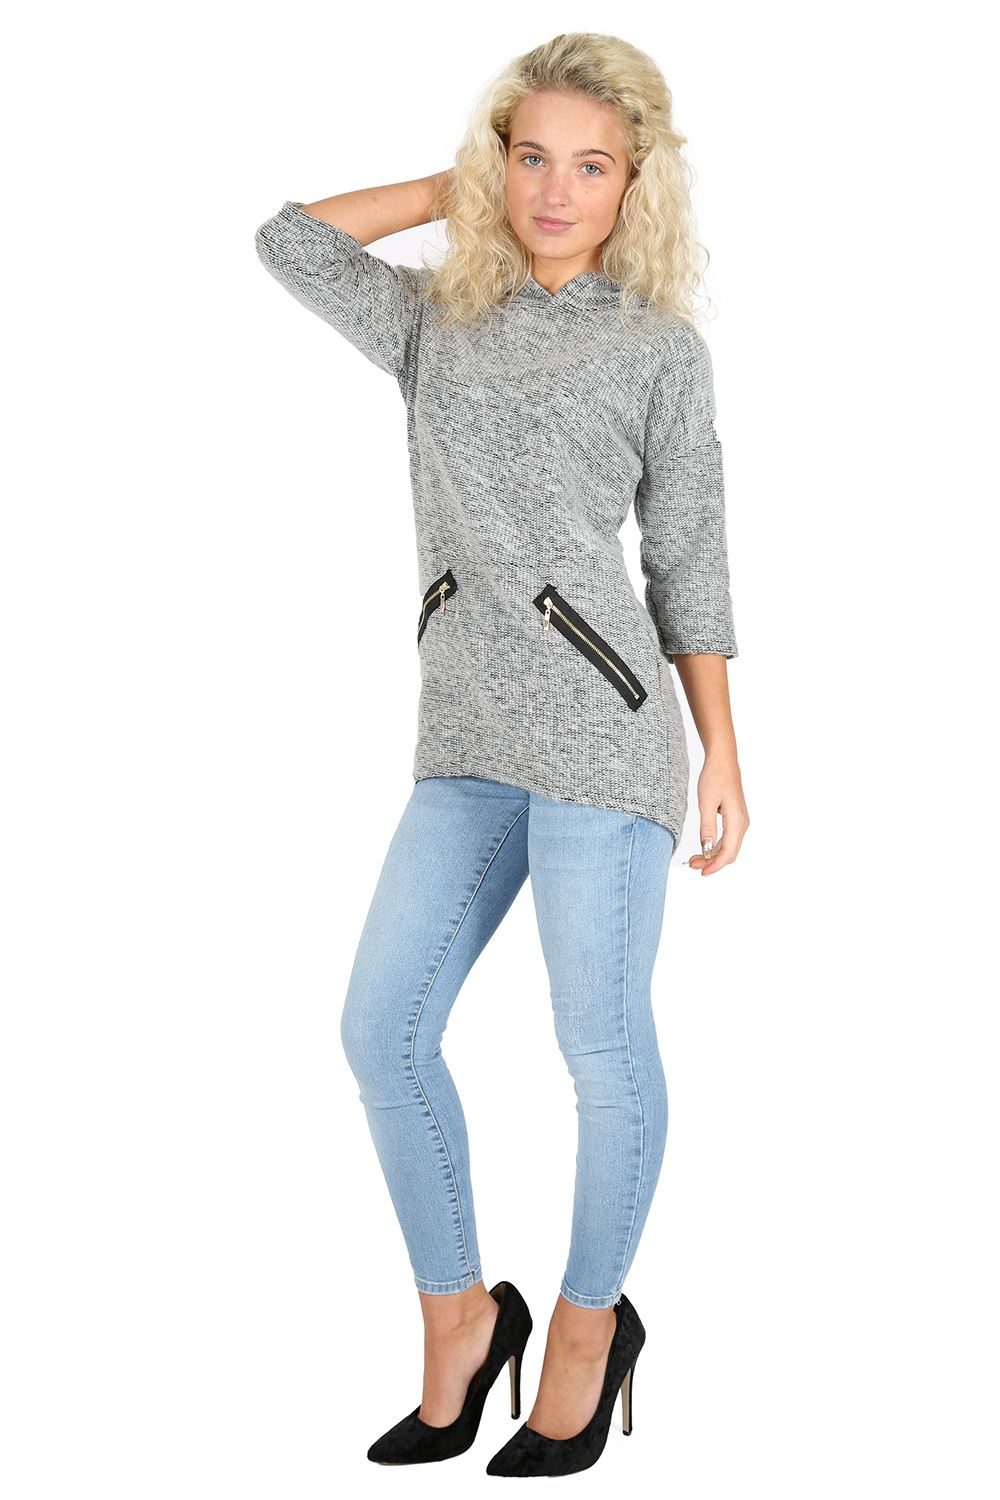 how to add a hood to a knitted sweater